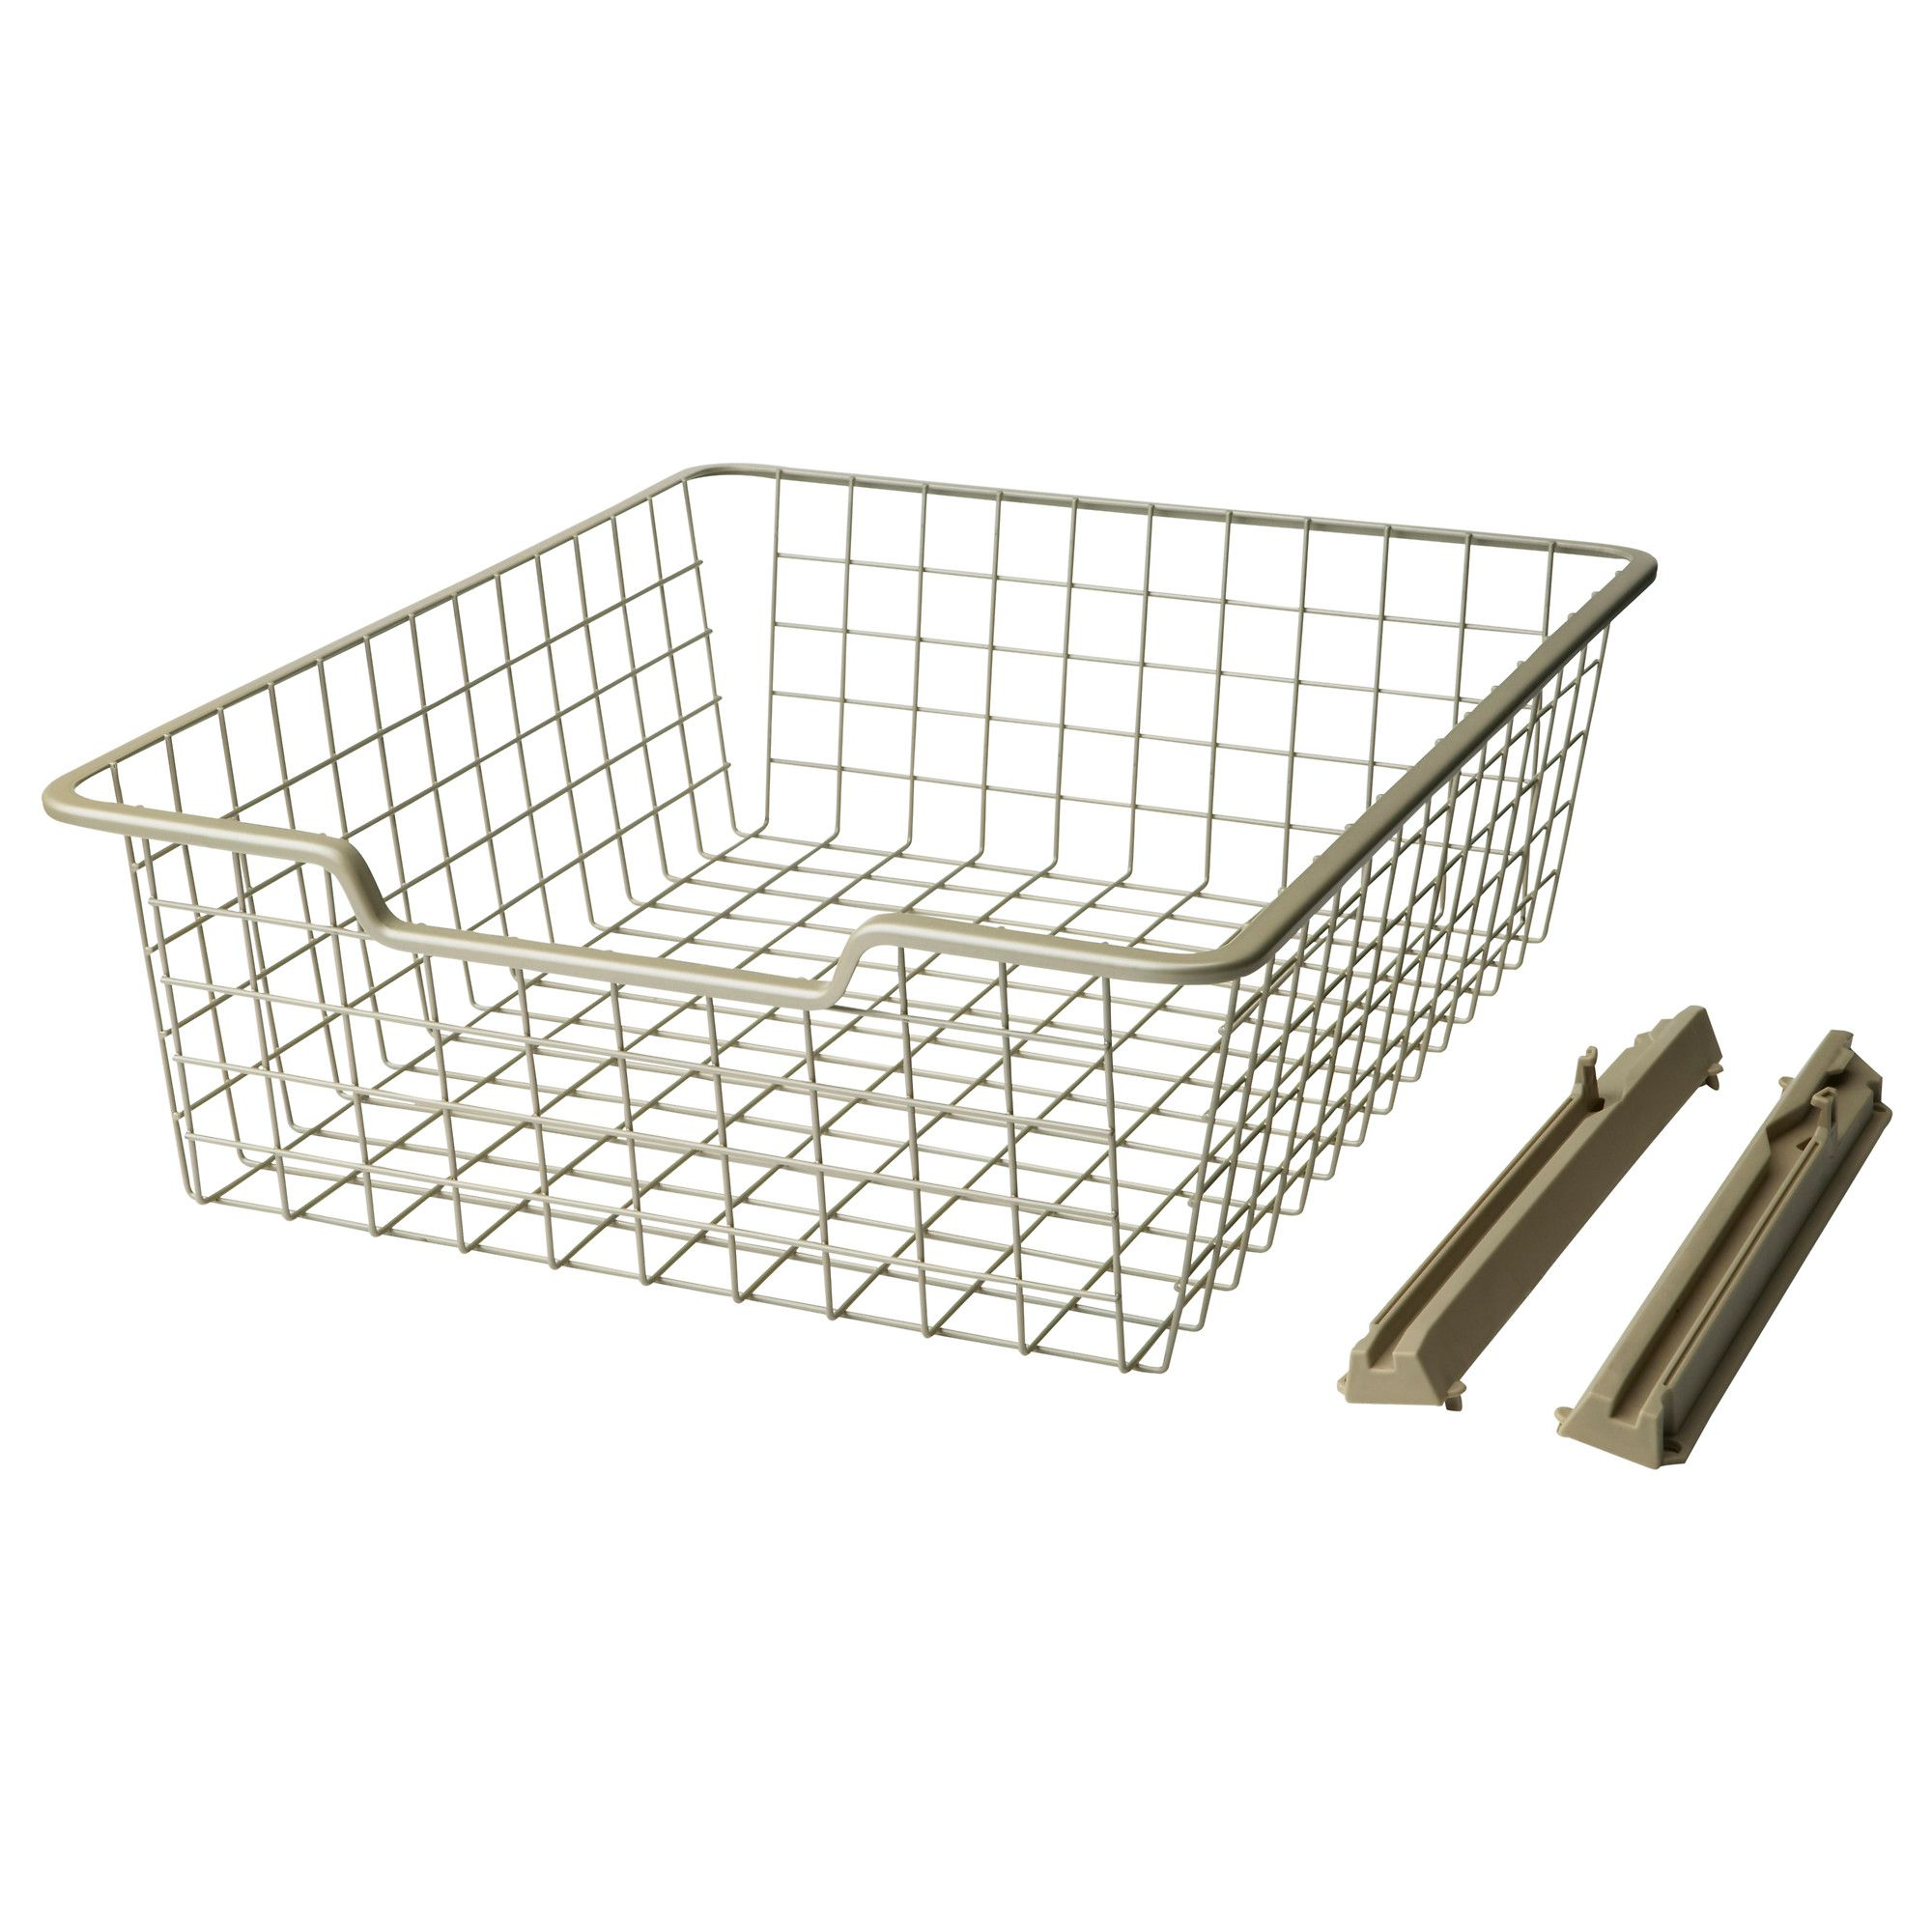 ikea sliding wire basket 10 bedroom pinterest wire basket ikea shopping and pipe desk. Black Bedroom Furniture Sets. Home Design Ideas